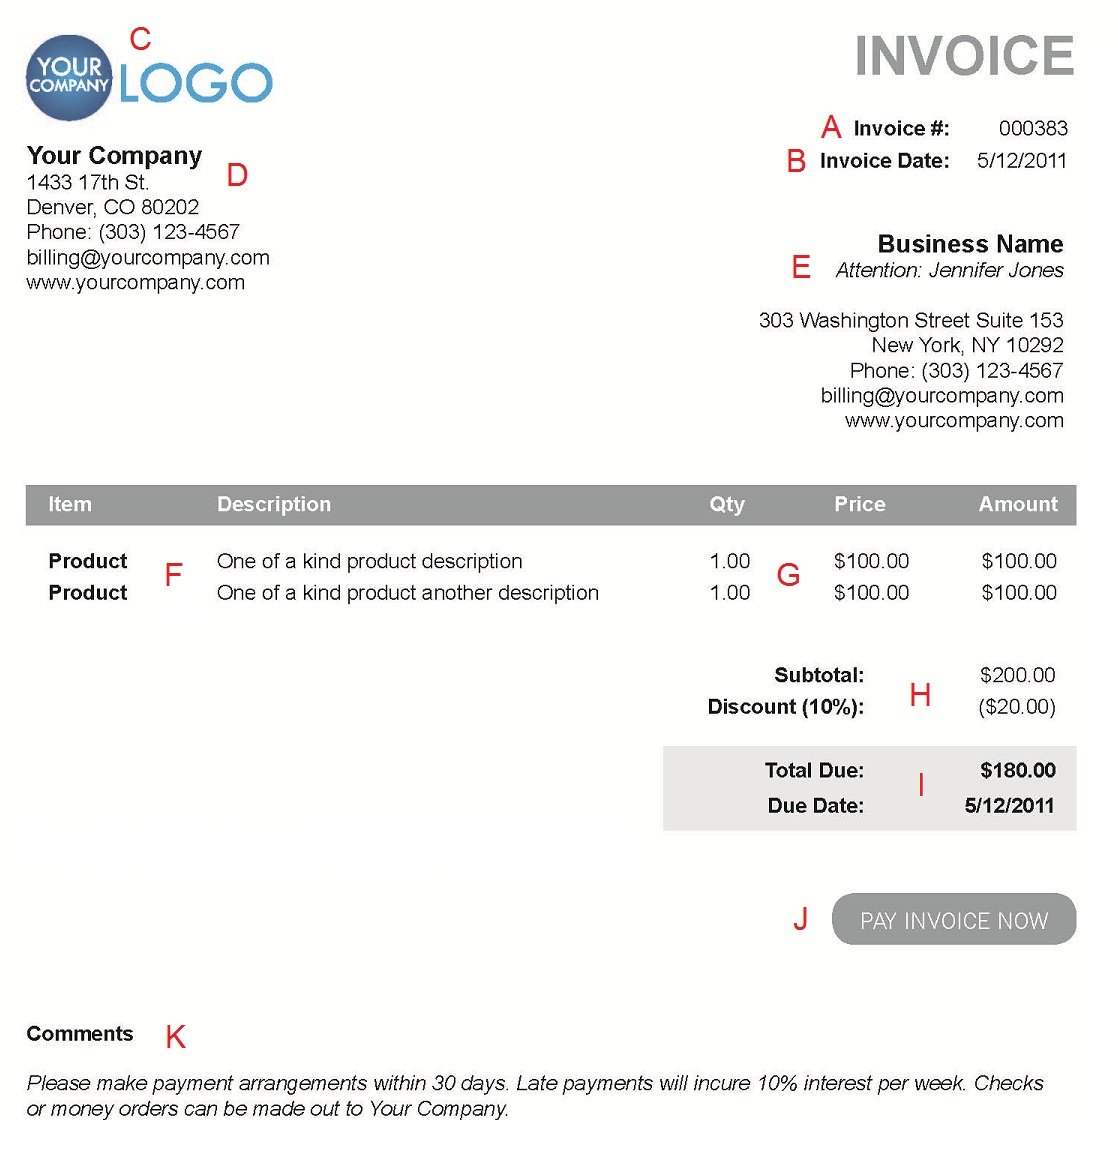 Aaaaeroincus  Gorgeous The  Different Sections Of An Electronic Payment Invoice With Exciting A  With Attractive Invoice Loan Also Videographer Invoice In Addition Invoice Word Doc And Buying A Car Below Invoice As Well As Invoice Due Additionally Invoice Template Blank From Paysimplecom With Aaaaeroincus  Exciting The  Different Sections Of An Electronic Payment Invoice With Attractive A  And Gorgeous Invoice Loan Also Videographer Invoice In Addition Invoice Word Doc From Paysimplecom